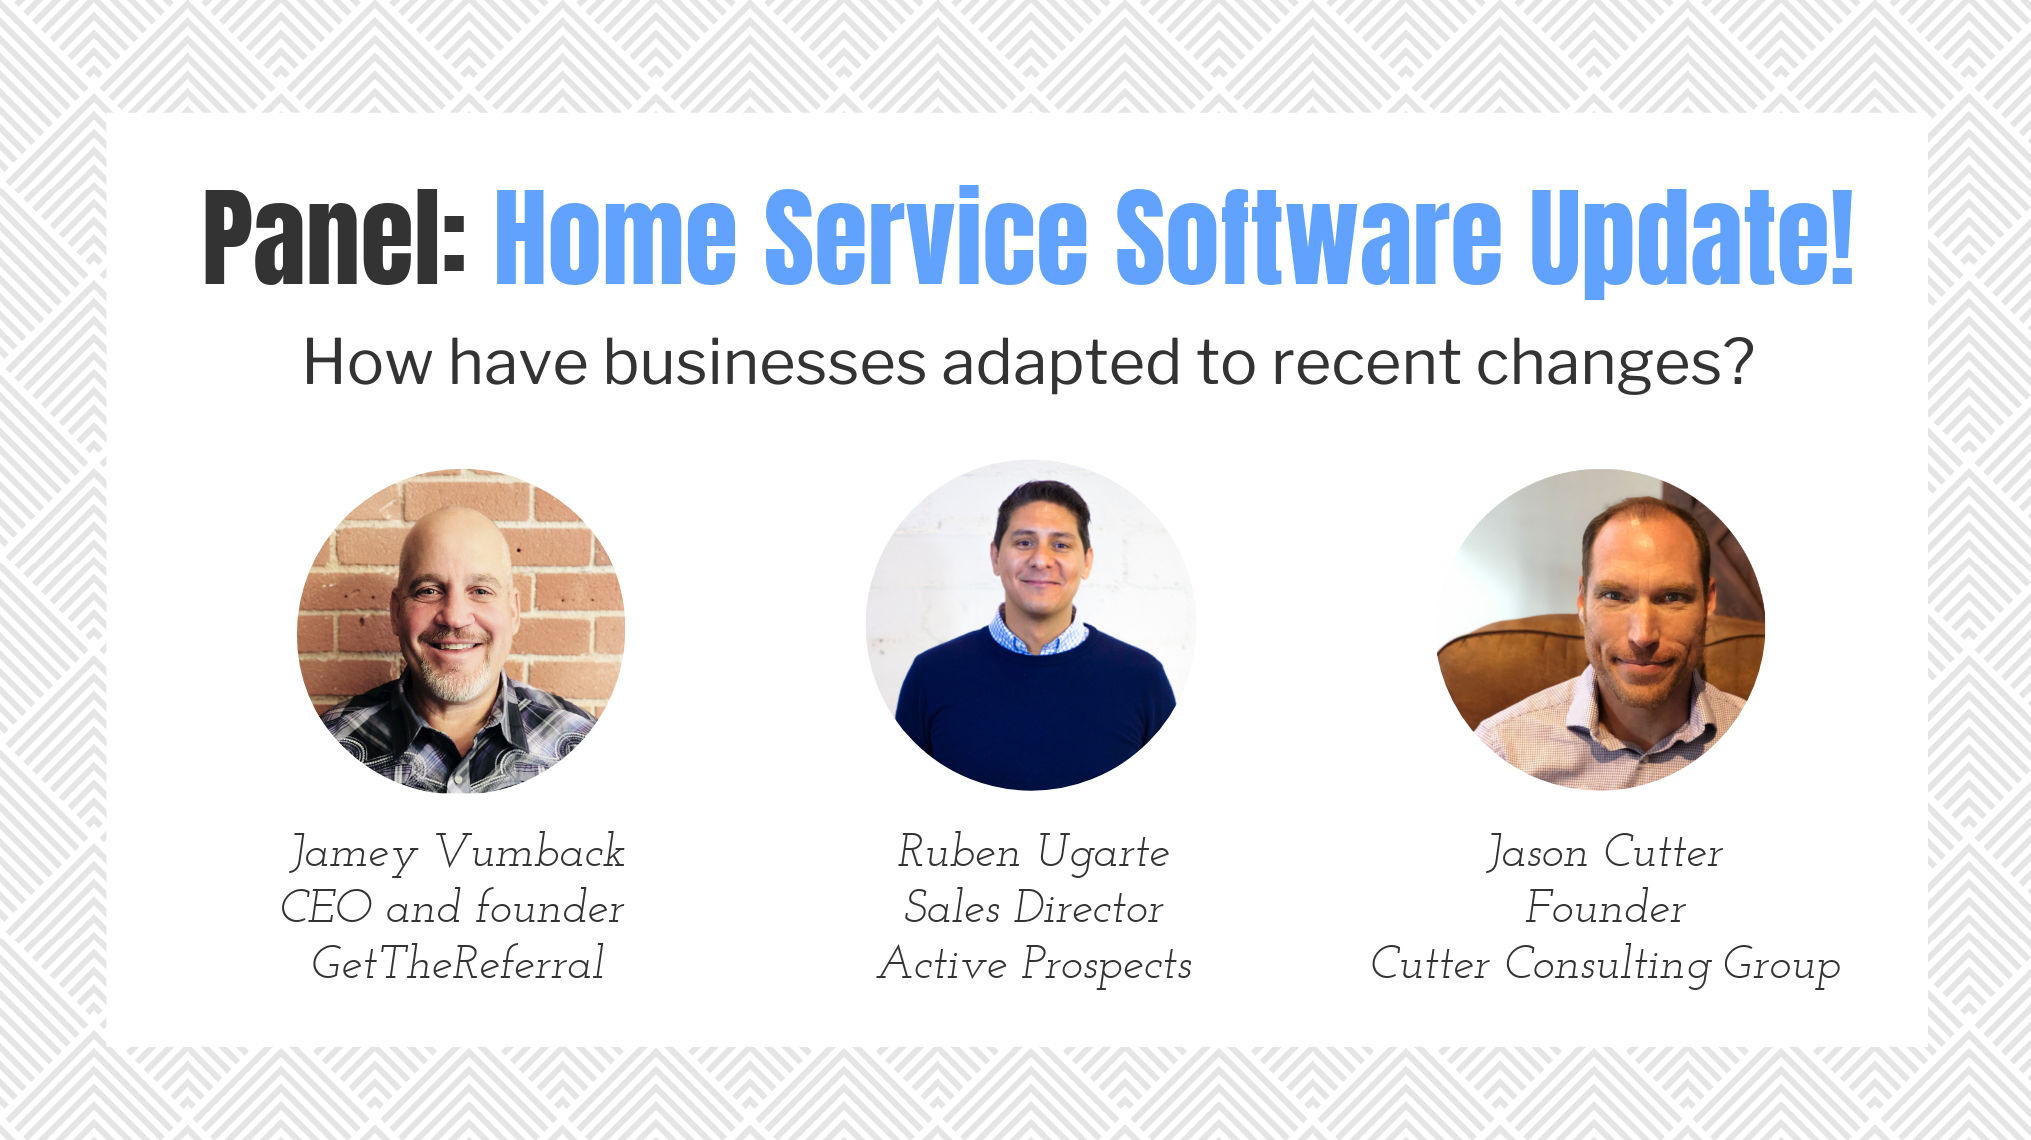 Panel: Home Service Software Update